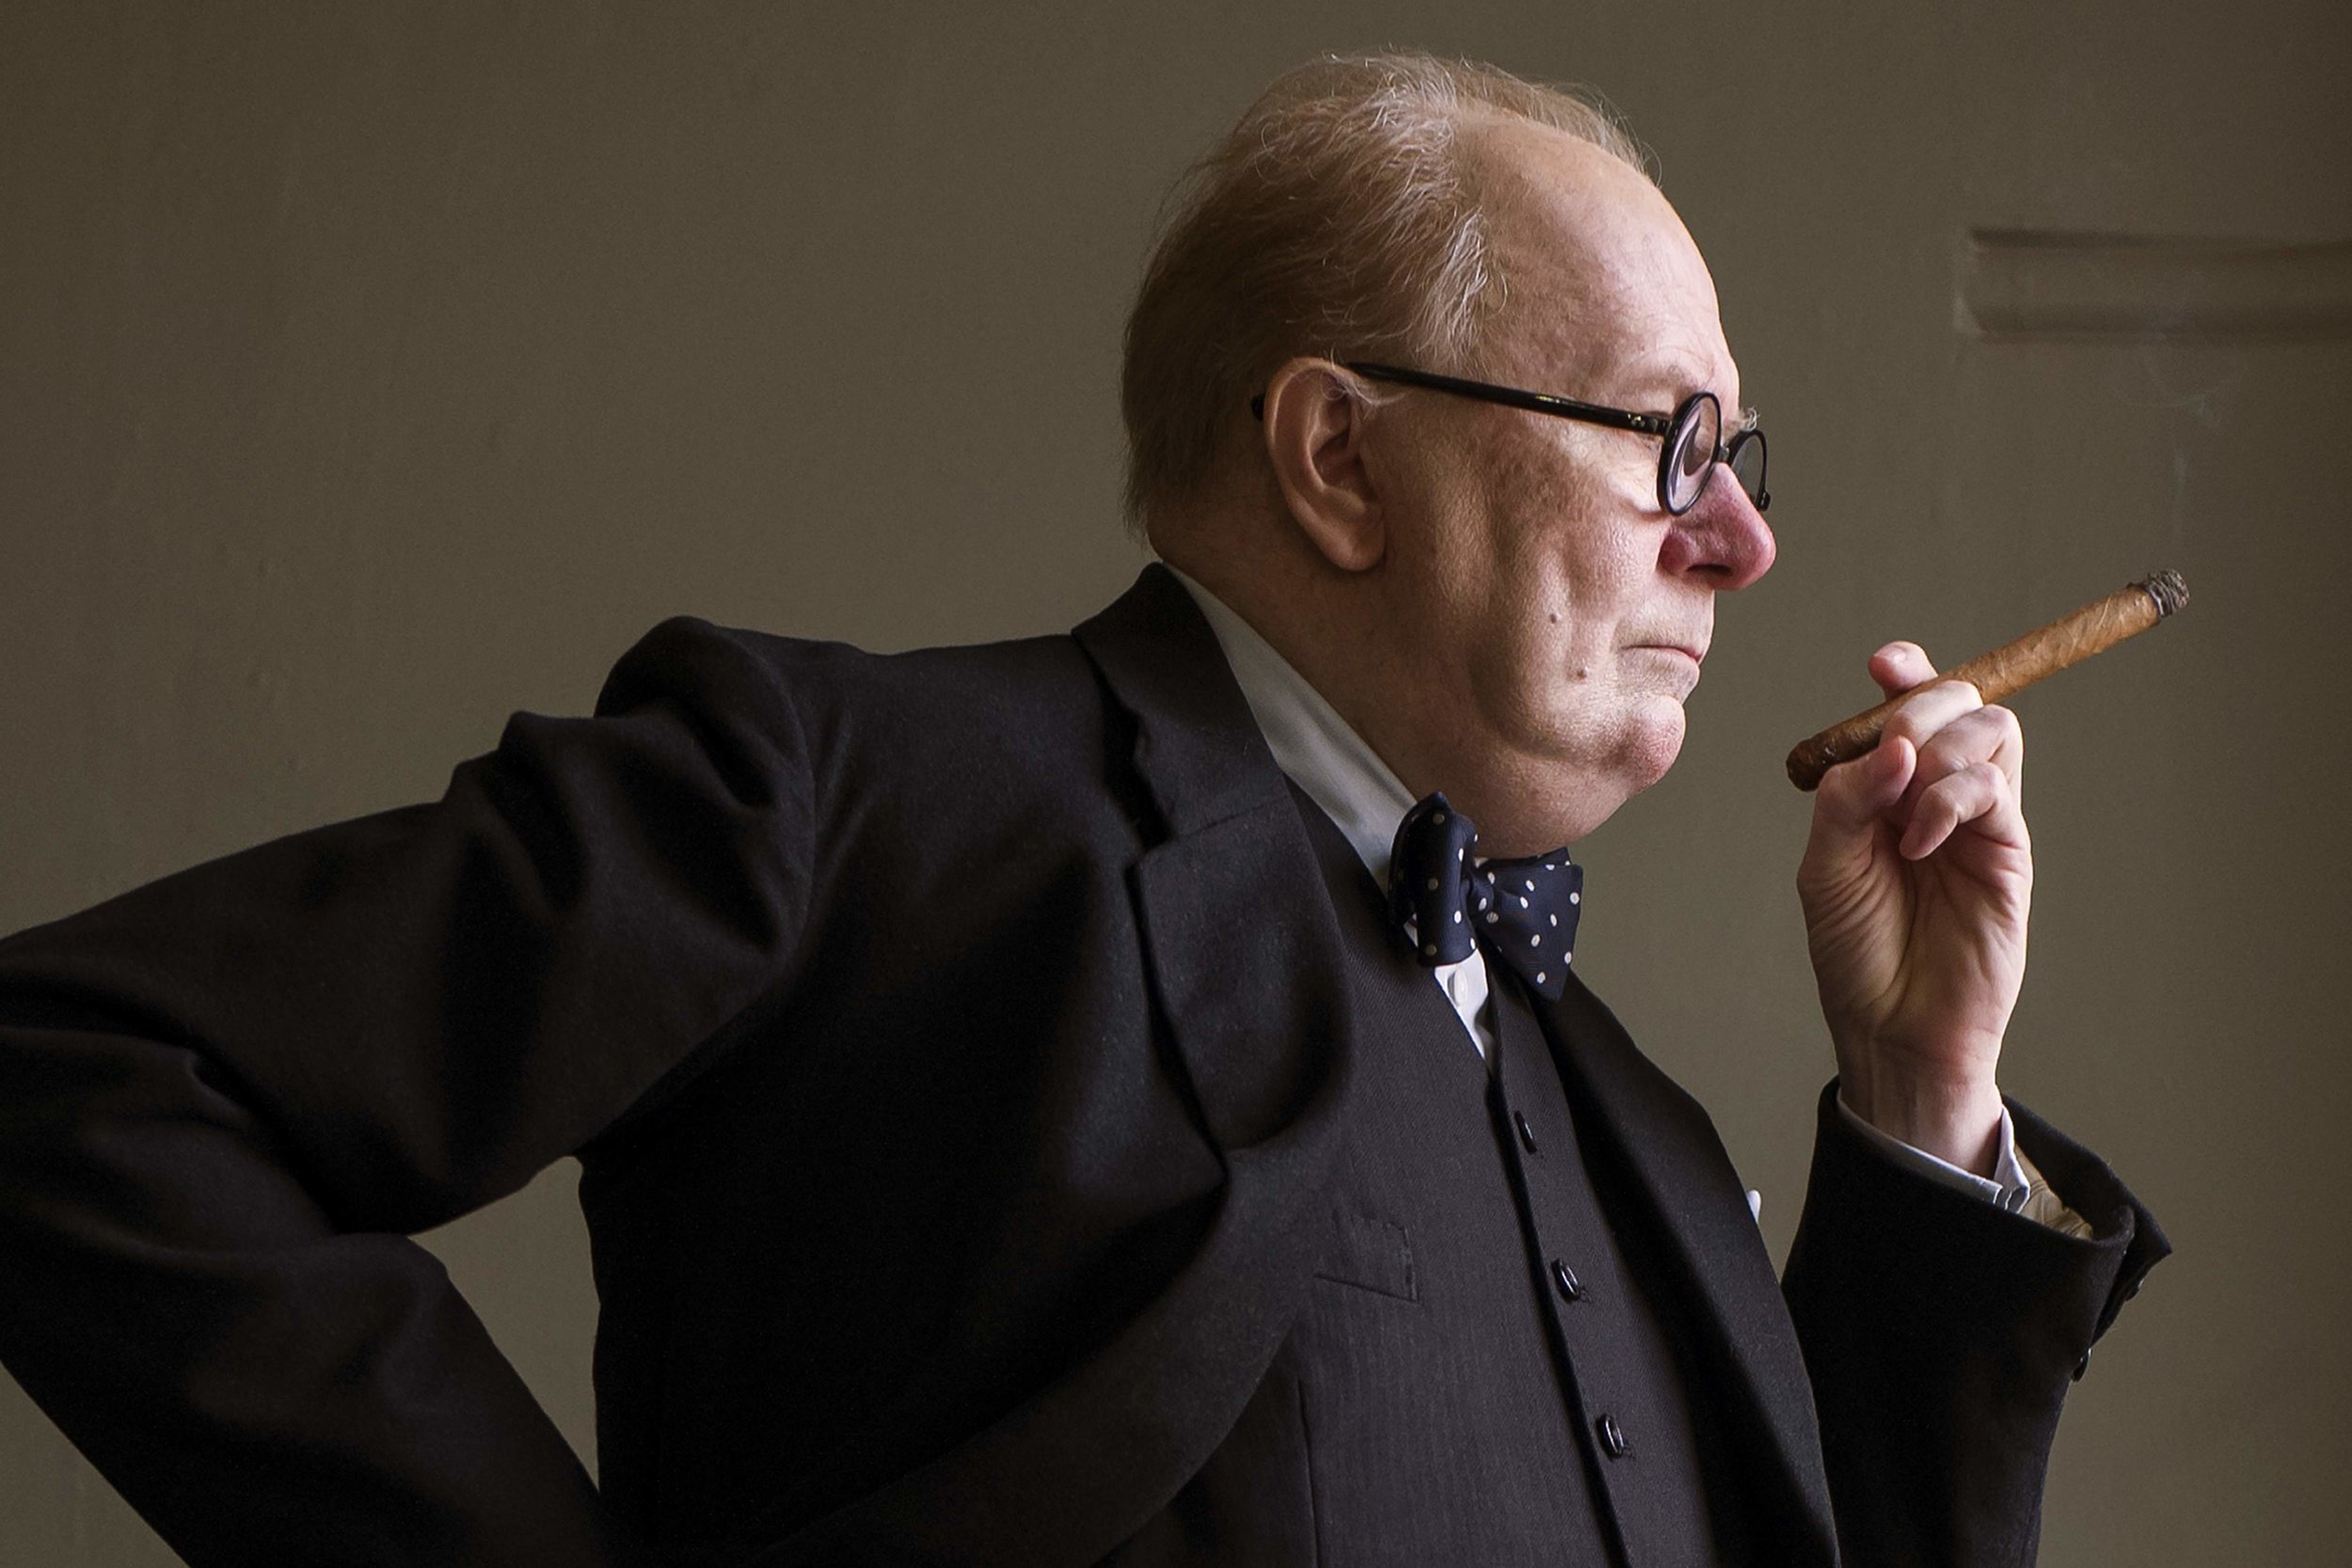 "12. GARY OLDMAN | as Prime Minister Winston Churchill | DARKEST HOUR   ""(Initially) I turned it down. You're stepping into Richard Hardy's shoes, Albert Finney's shoes, Michael Gambon's. And, of course, the silhouette. You look at me, and I probably could have a good crack at Stan Laurel.  What I did was to push all of that aside and go to the source material, the [1940] newsreel footage. He's often thought of as this grumpy curmudgeon born in a bad mood, with a whiskey and a cigar, and he shuffles in. And what I saw, what jumped out of this old, jittery black-and-white footage, was a man who was 65 but moved like a 20-year-old. He moved through space with a fixity of purpose. He had this cherubic face with sort of a naughty schoolboy grin, with a sparkle in his eye.  I was born in 1958, and of course Churchill was our hero — I guess our savior. The man who won the war. My mother's 98, went through the blitz; my dad was in the Royal Navy at the battle of Okinawa. One feels a connection there. But I'm constantly amazed discovering things about Churchill. I was surprised to find when I read the script was just how close we came to losing. Eventually, we didn't do a deal with Hitler. I could forgive perhaps the Americans for not knowing the history, but I thought it was interesting that in Britain a lot of the people also didn't know any of the details of the story. That is something to take away from the film, to realize just how perilously close we came right down to the wire."" -  AARP, November 21, 2017"